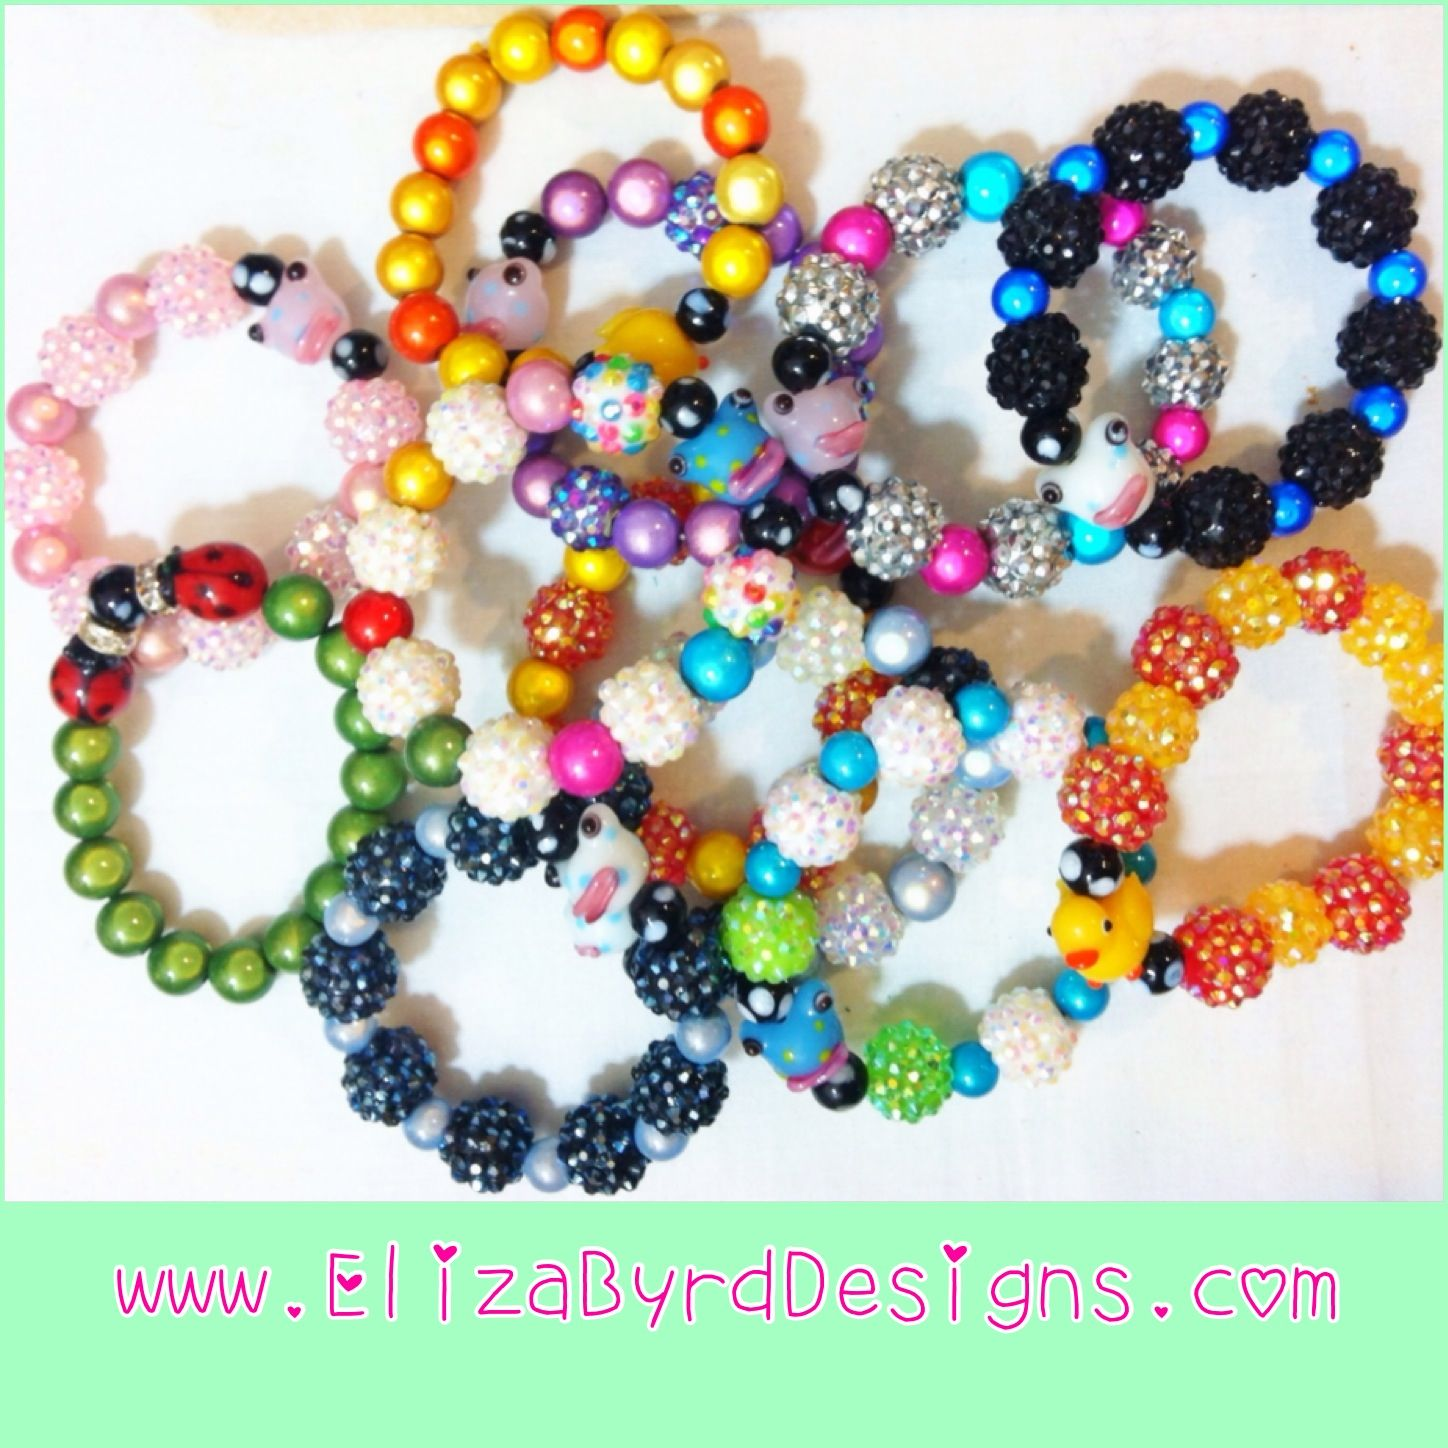 Kids Jewelry | Bows and ill lady hair style | Pinterest